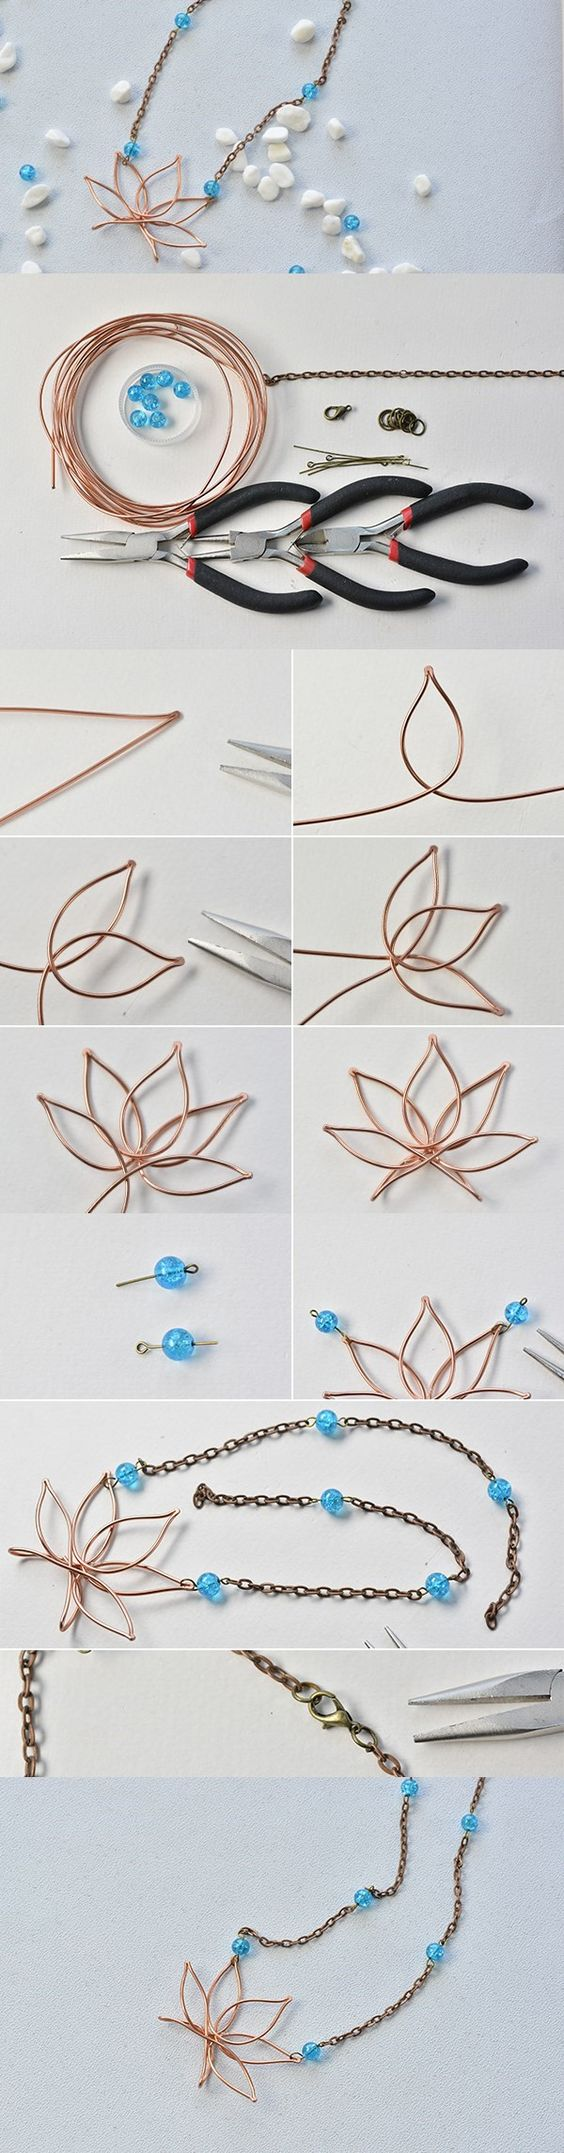 Fine Wire Jewelry Ideas Gallery Electrical And Wiring